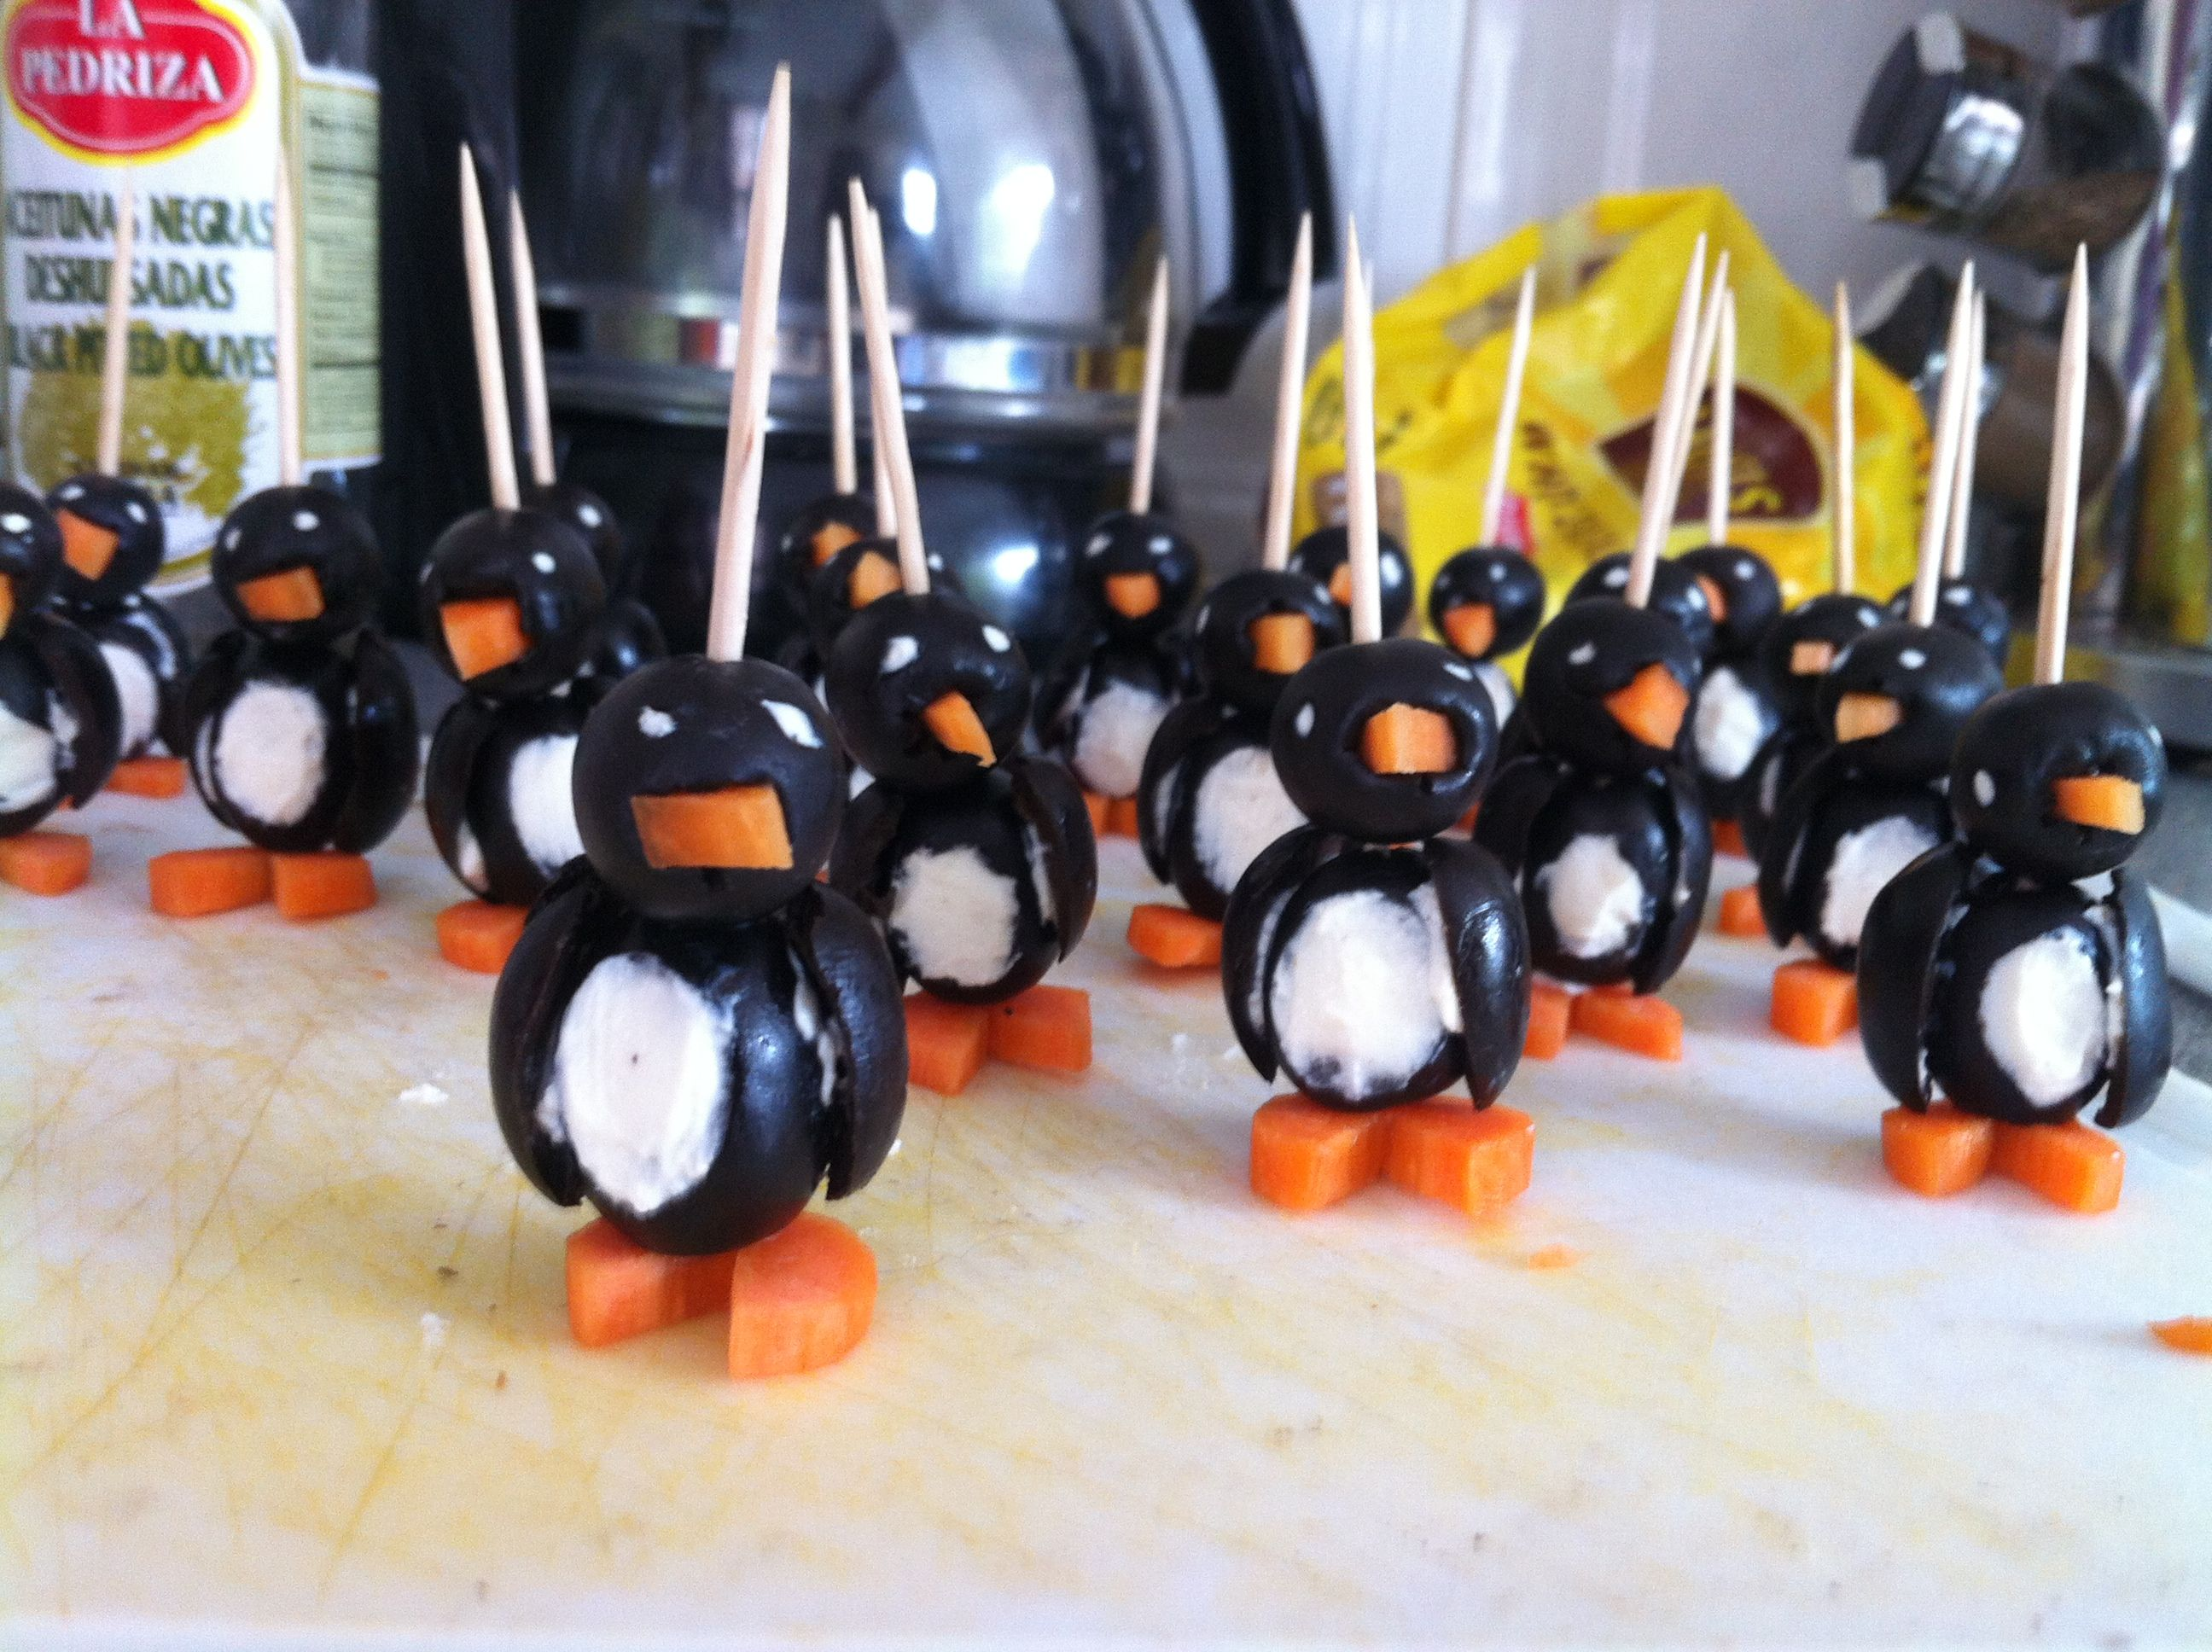 olive, carrot and cream cheese penguins!